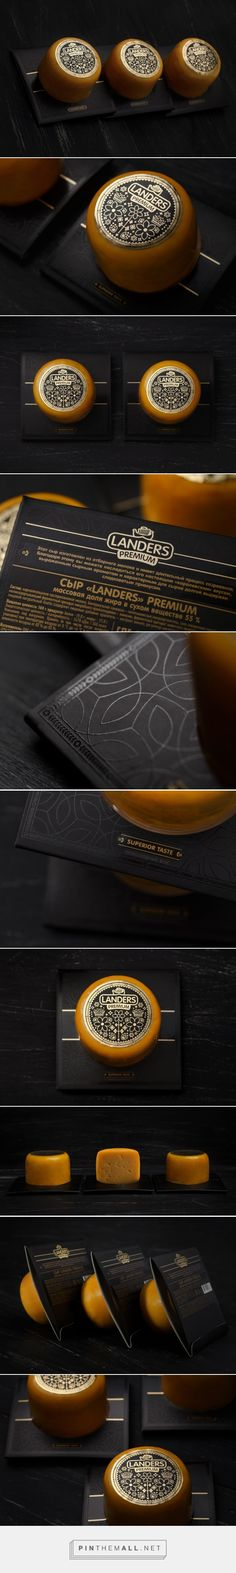 Landers Premium Cheese Packaging by Fabula Branding | Fivestar Branding Agency – Design and Branding Agency & Curated Inspiration Gallery